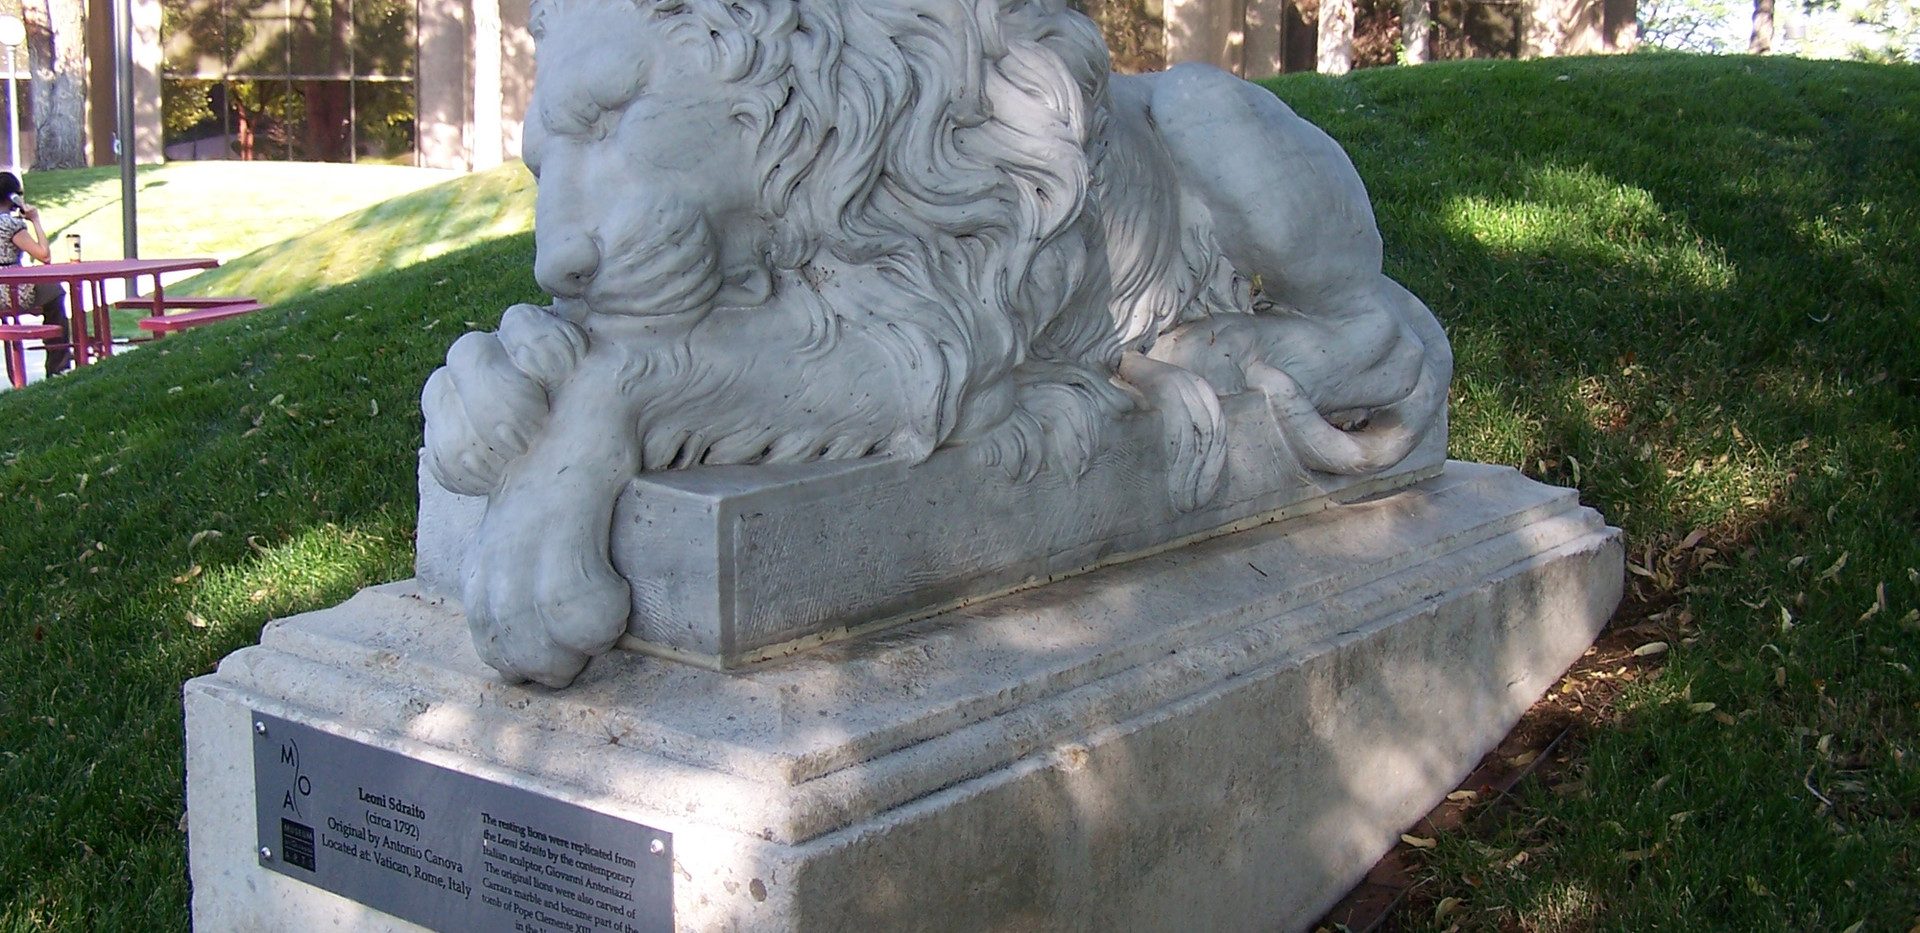 The Resting Lion